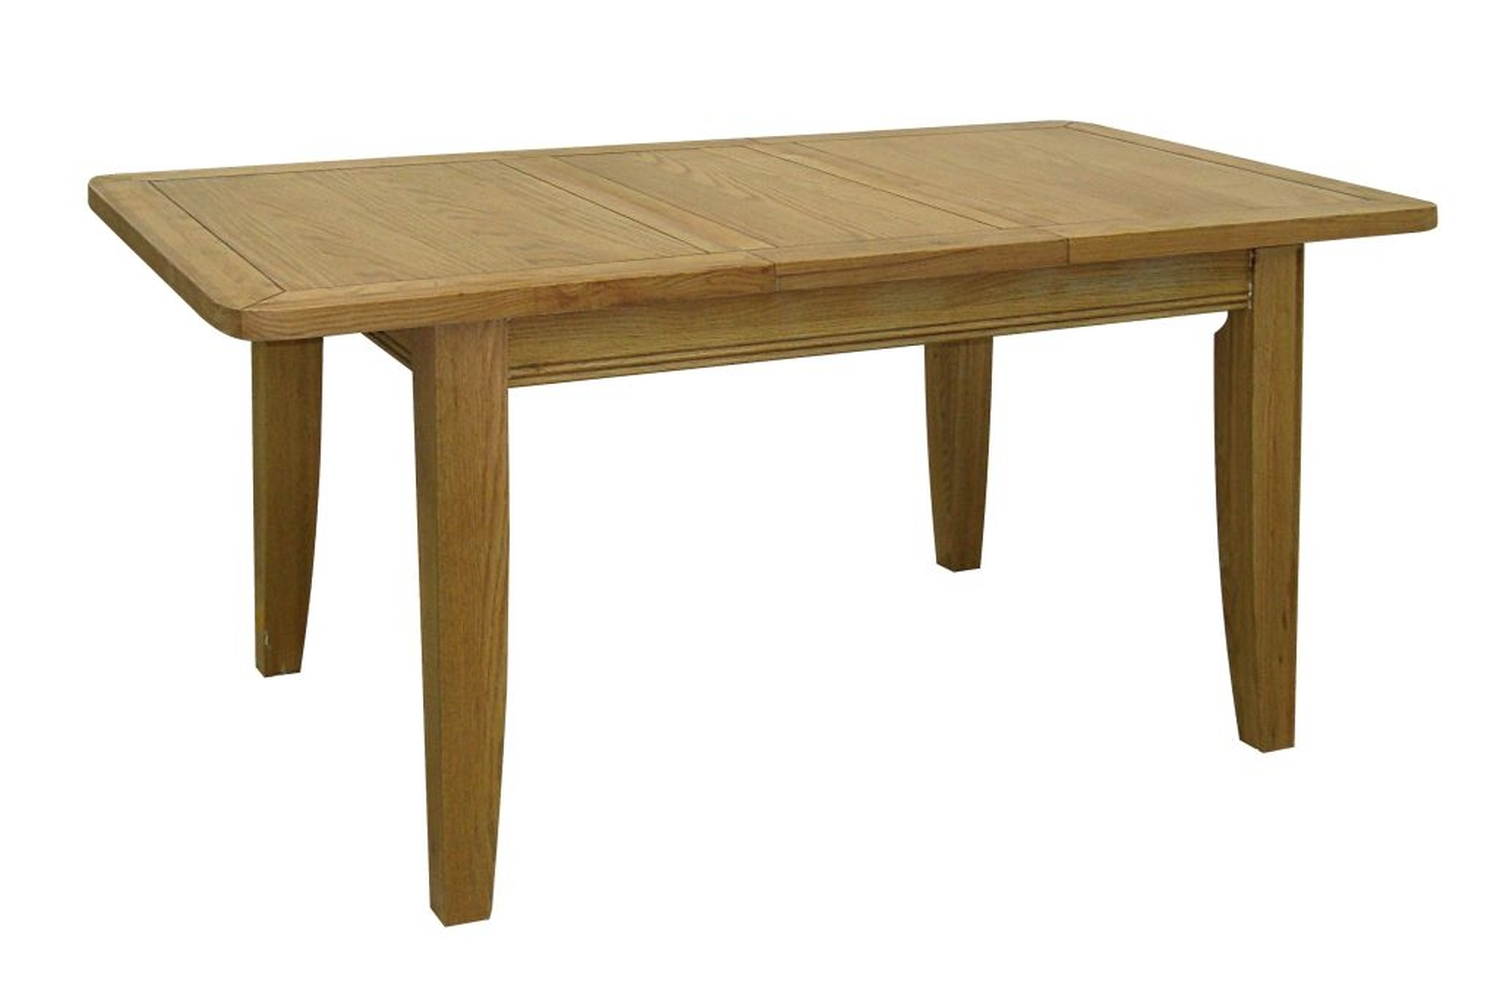 Linden solid oak dining room furniture extending